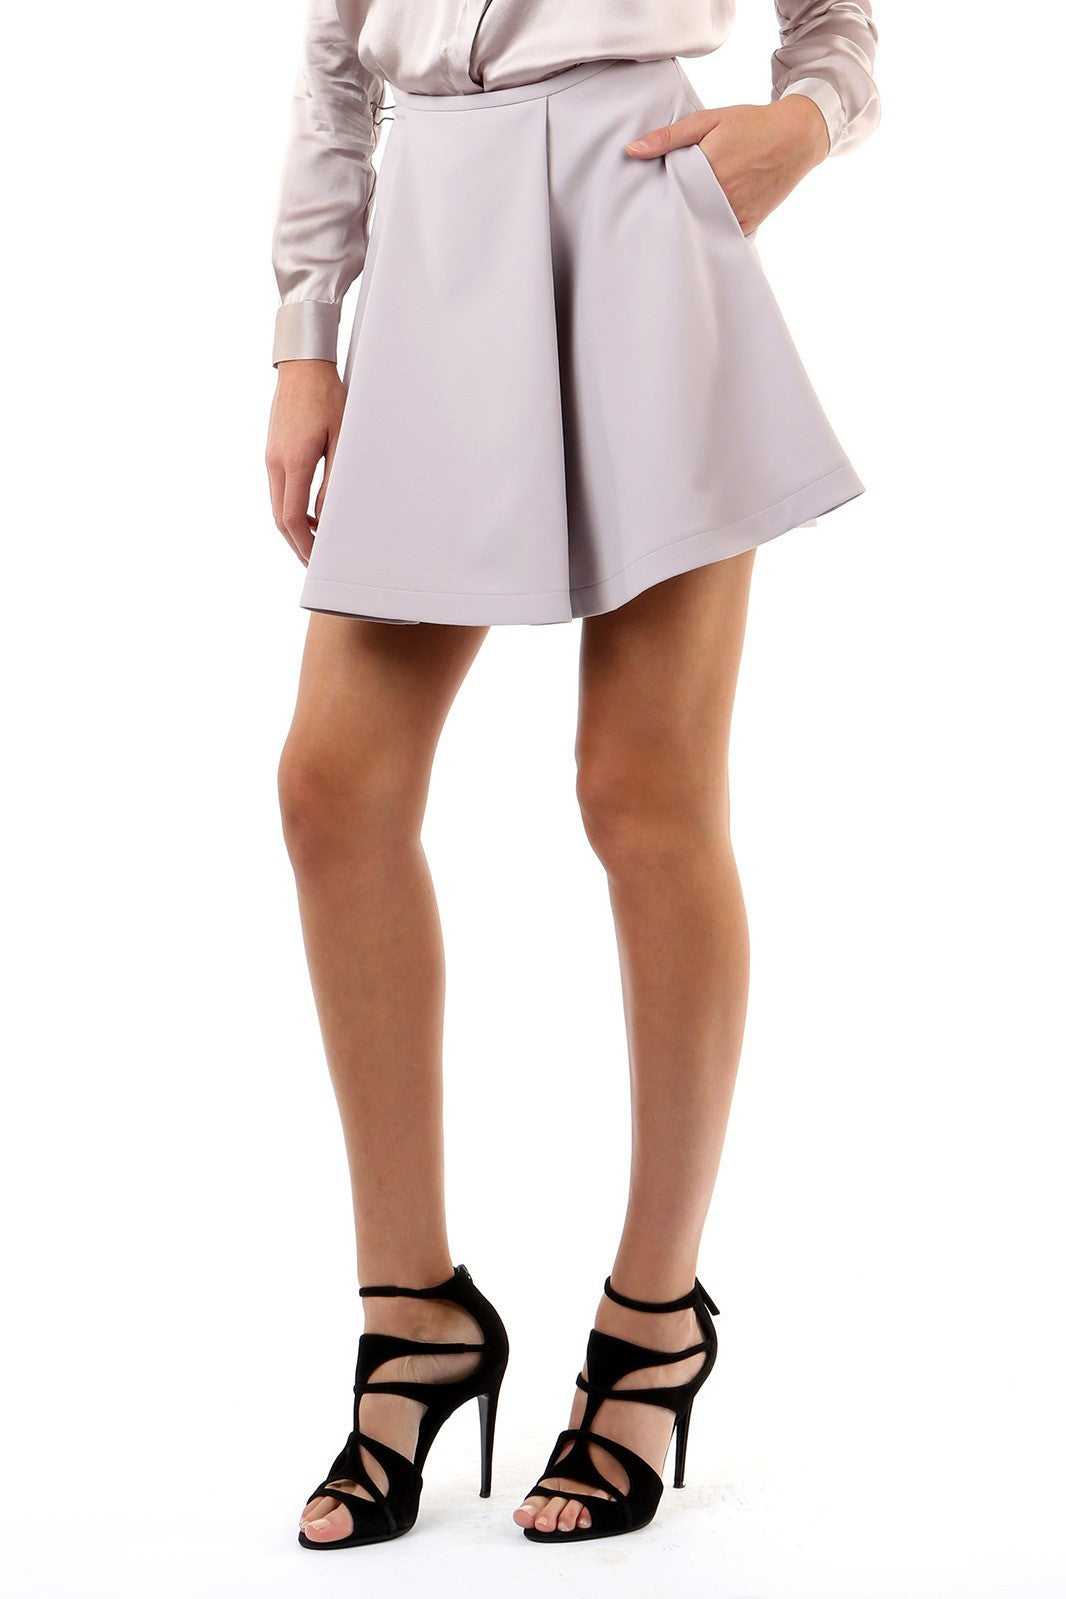 Jay Godfrey Mauve Pleated Mini Skirt - Side View